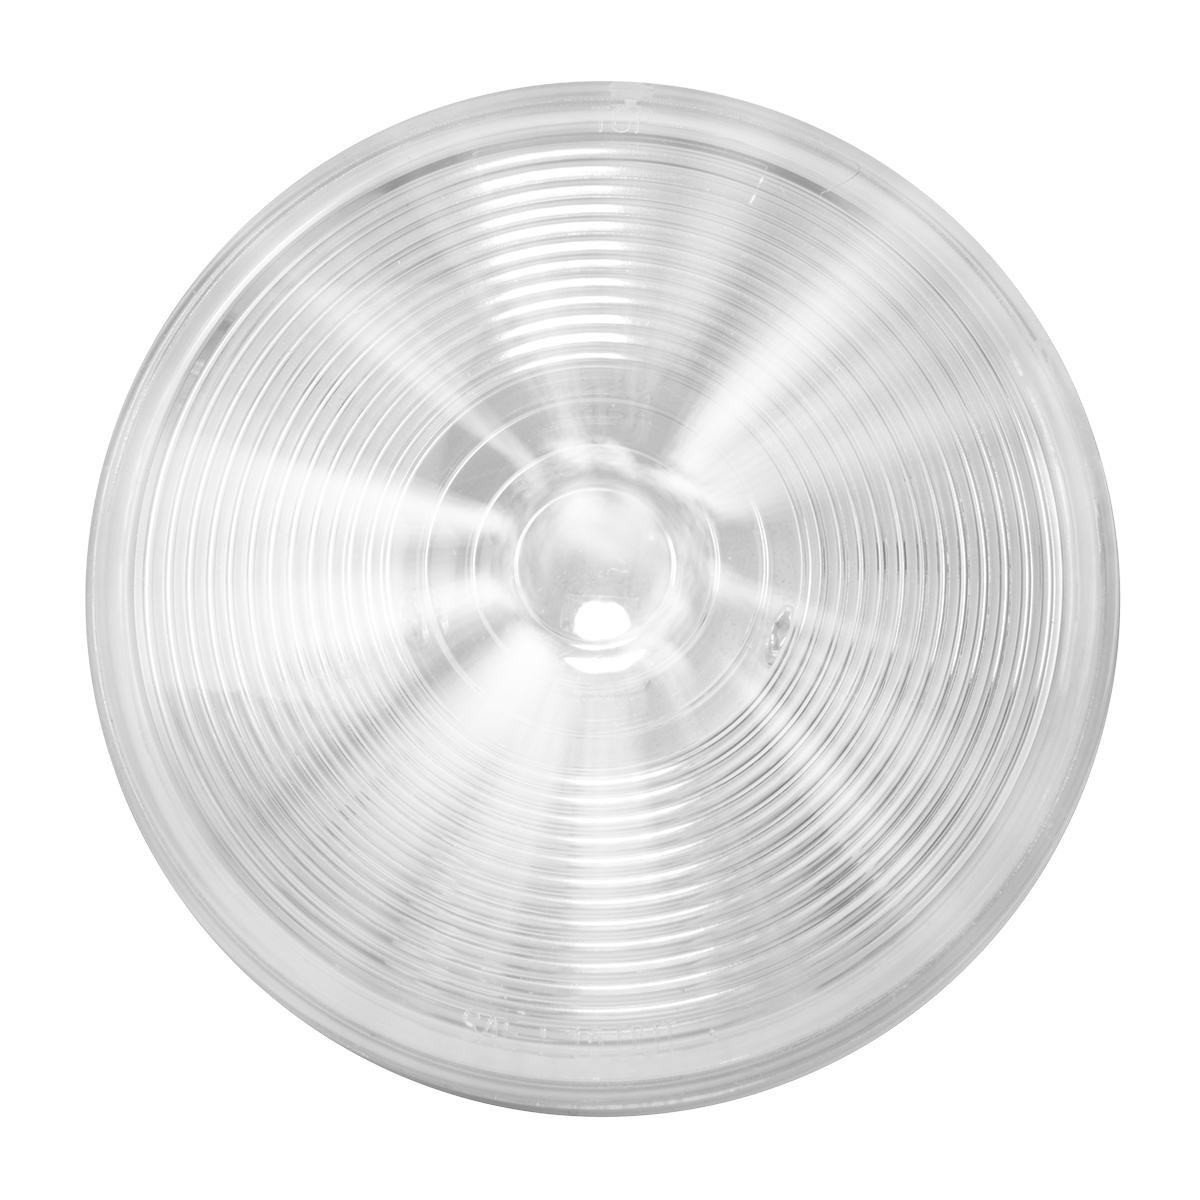 "75924 White/Clear 4"" Single LED Light"